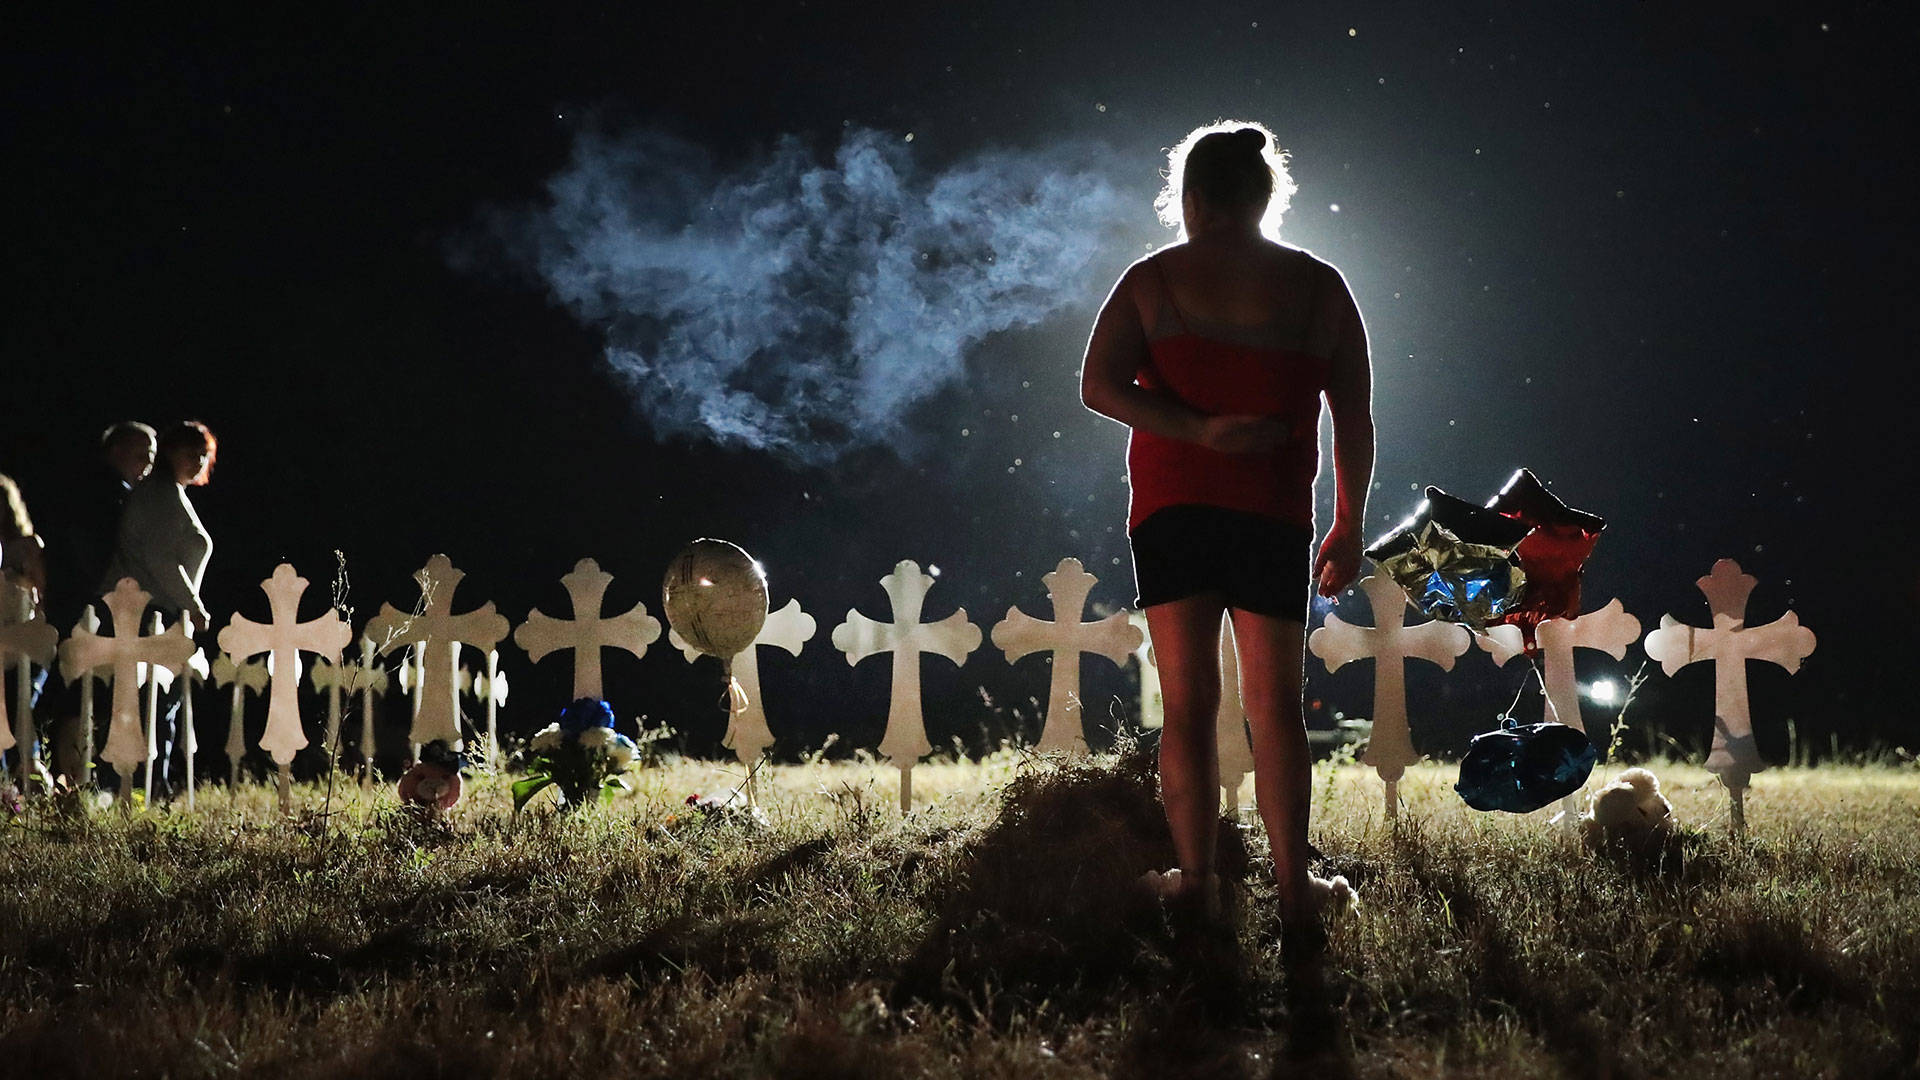 Twenty-six crosses stand in a field on the edge of town to honor the 26 victims killed at the First Baptist Church of Sutherland Springs on Nov. 6, 2017 in Sutherland Springs, Texas.  Scott Olson/Getty Images